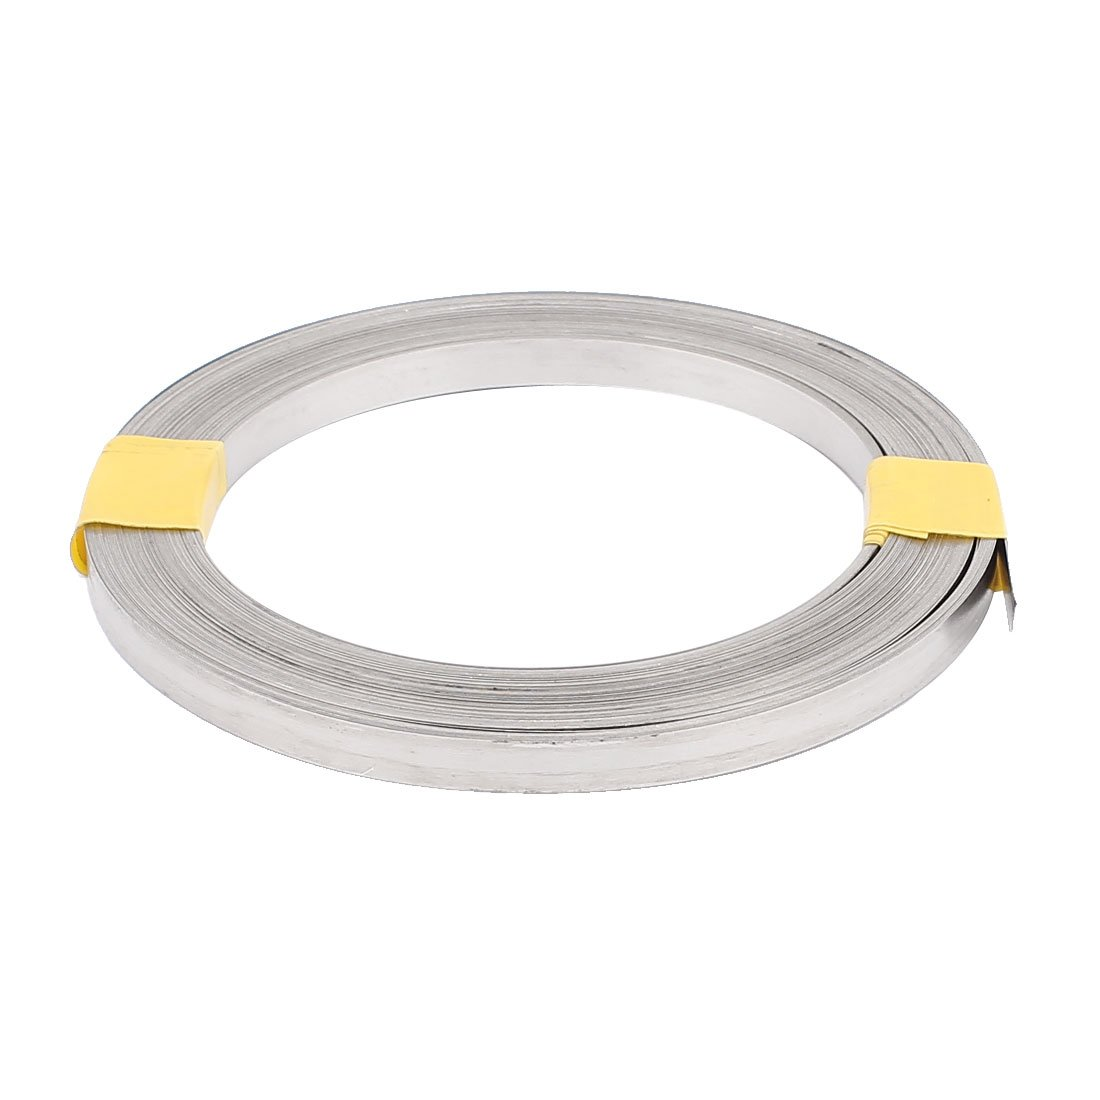 uxcell 15M 49Ft 0.2x6mm Nichrome Flat Heater Wire for Heating Elements